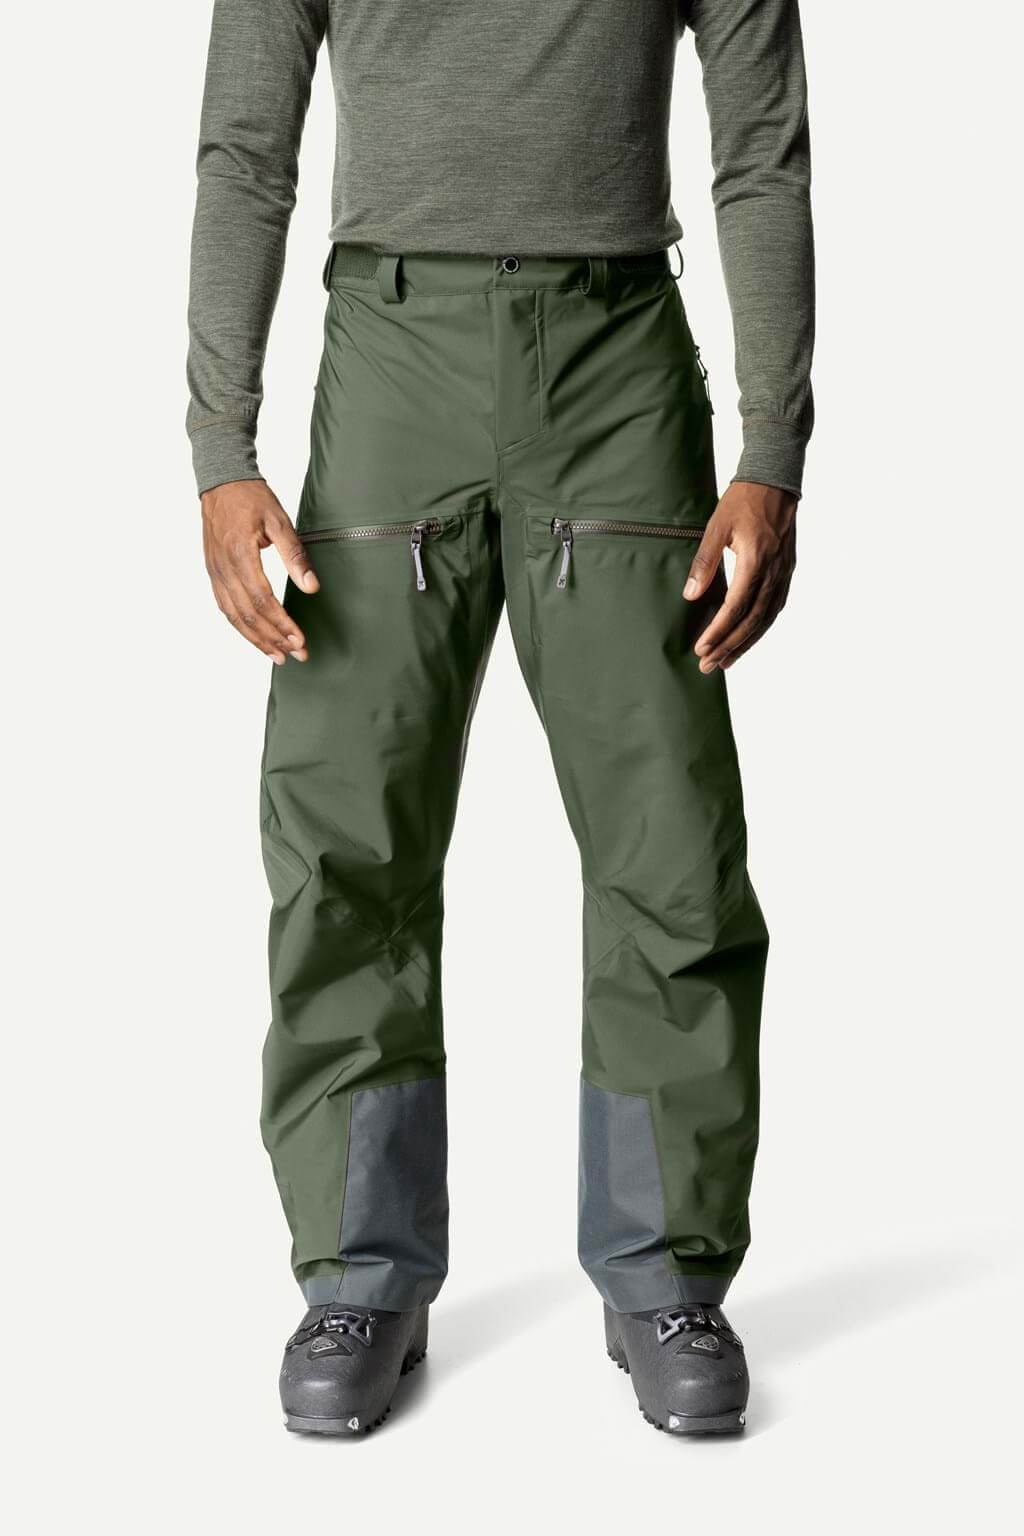 Men's Purpose Pants